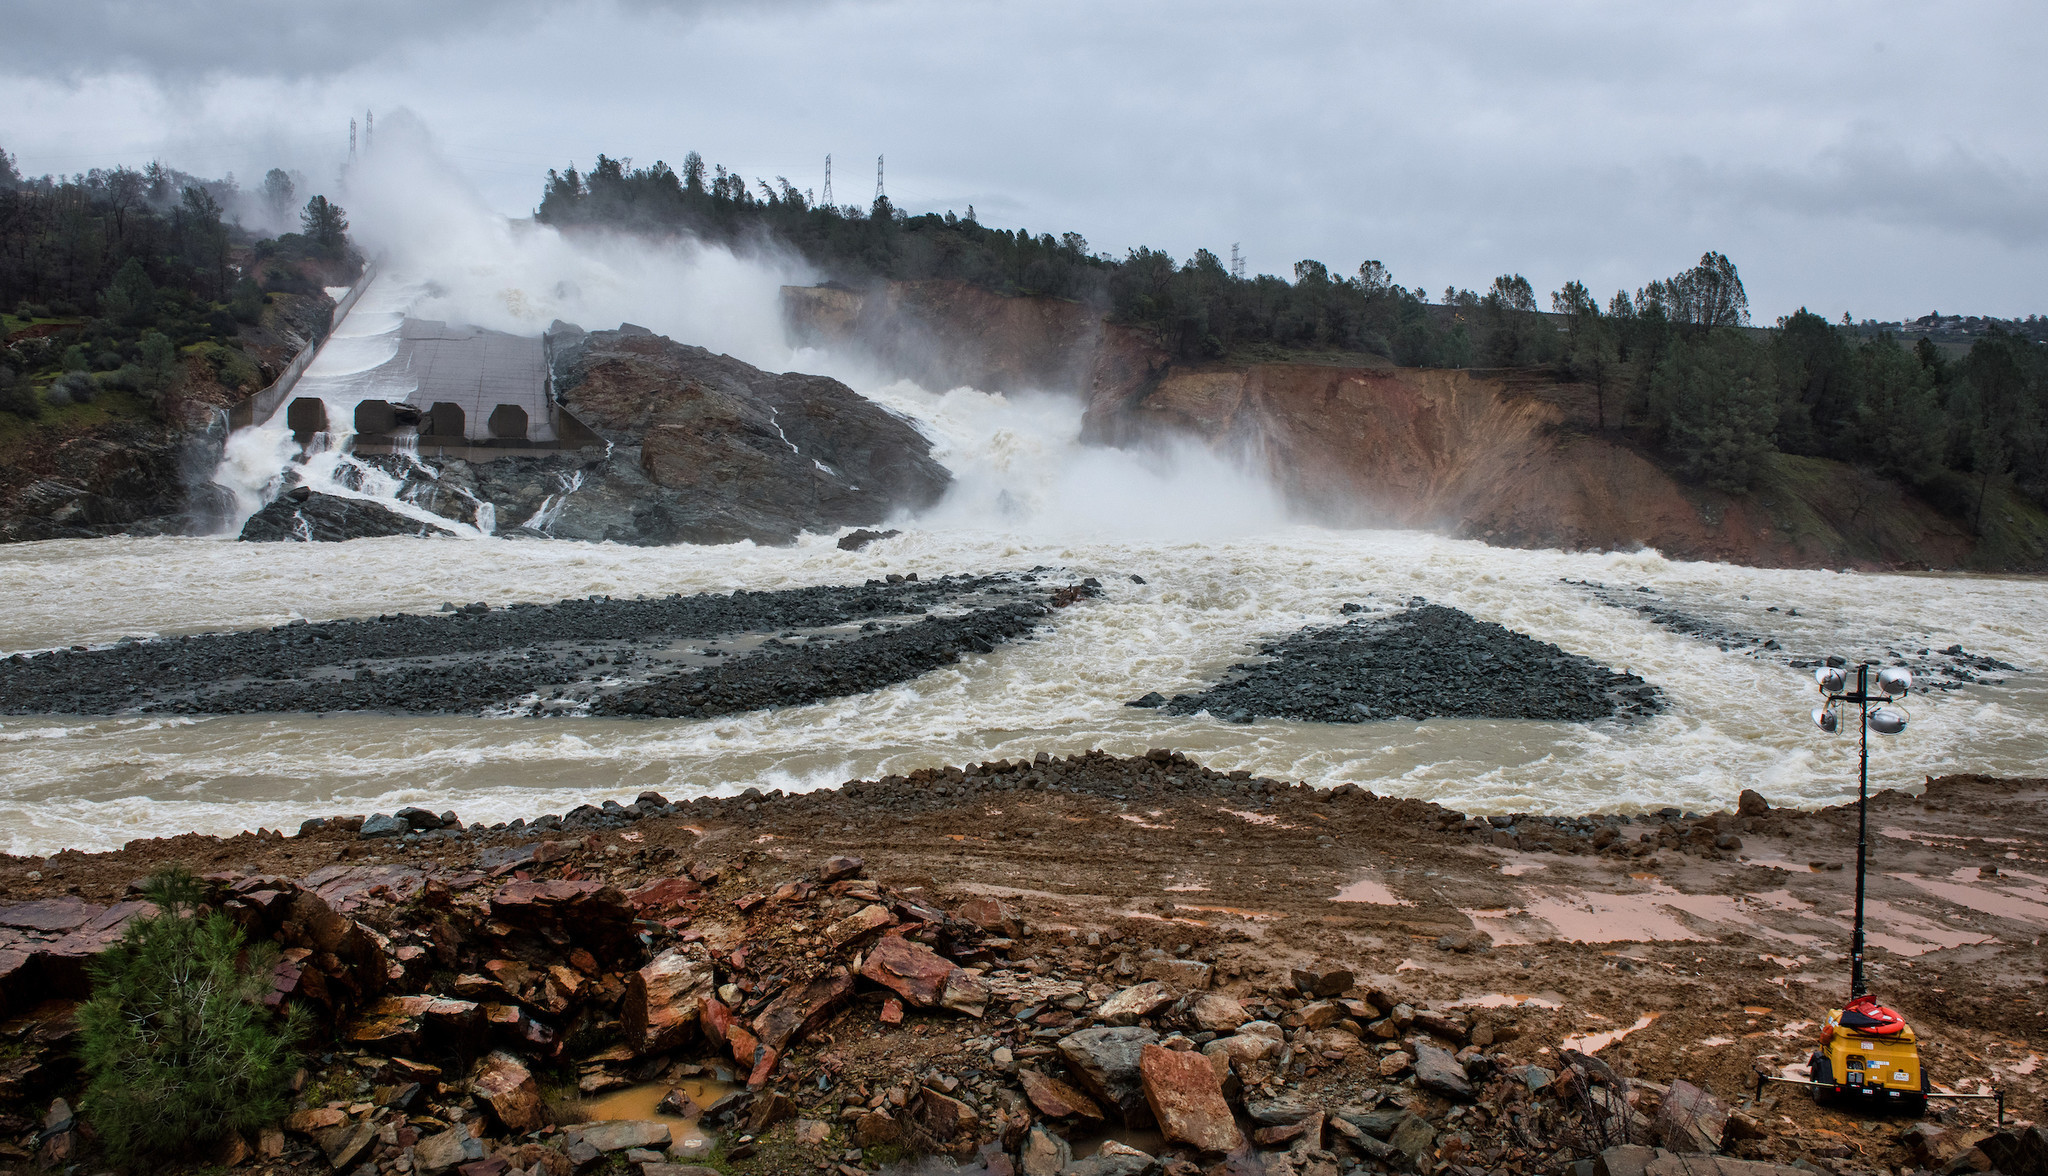 The spillway on Feb. 20.